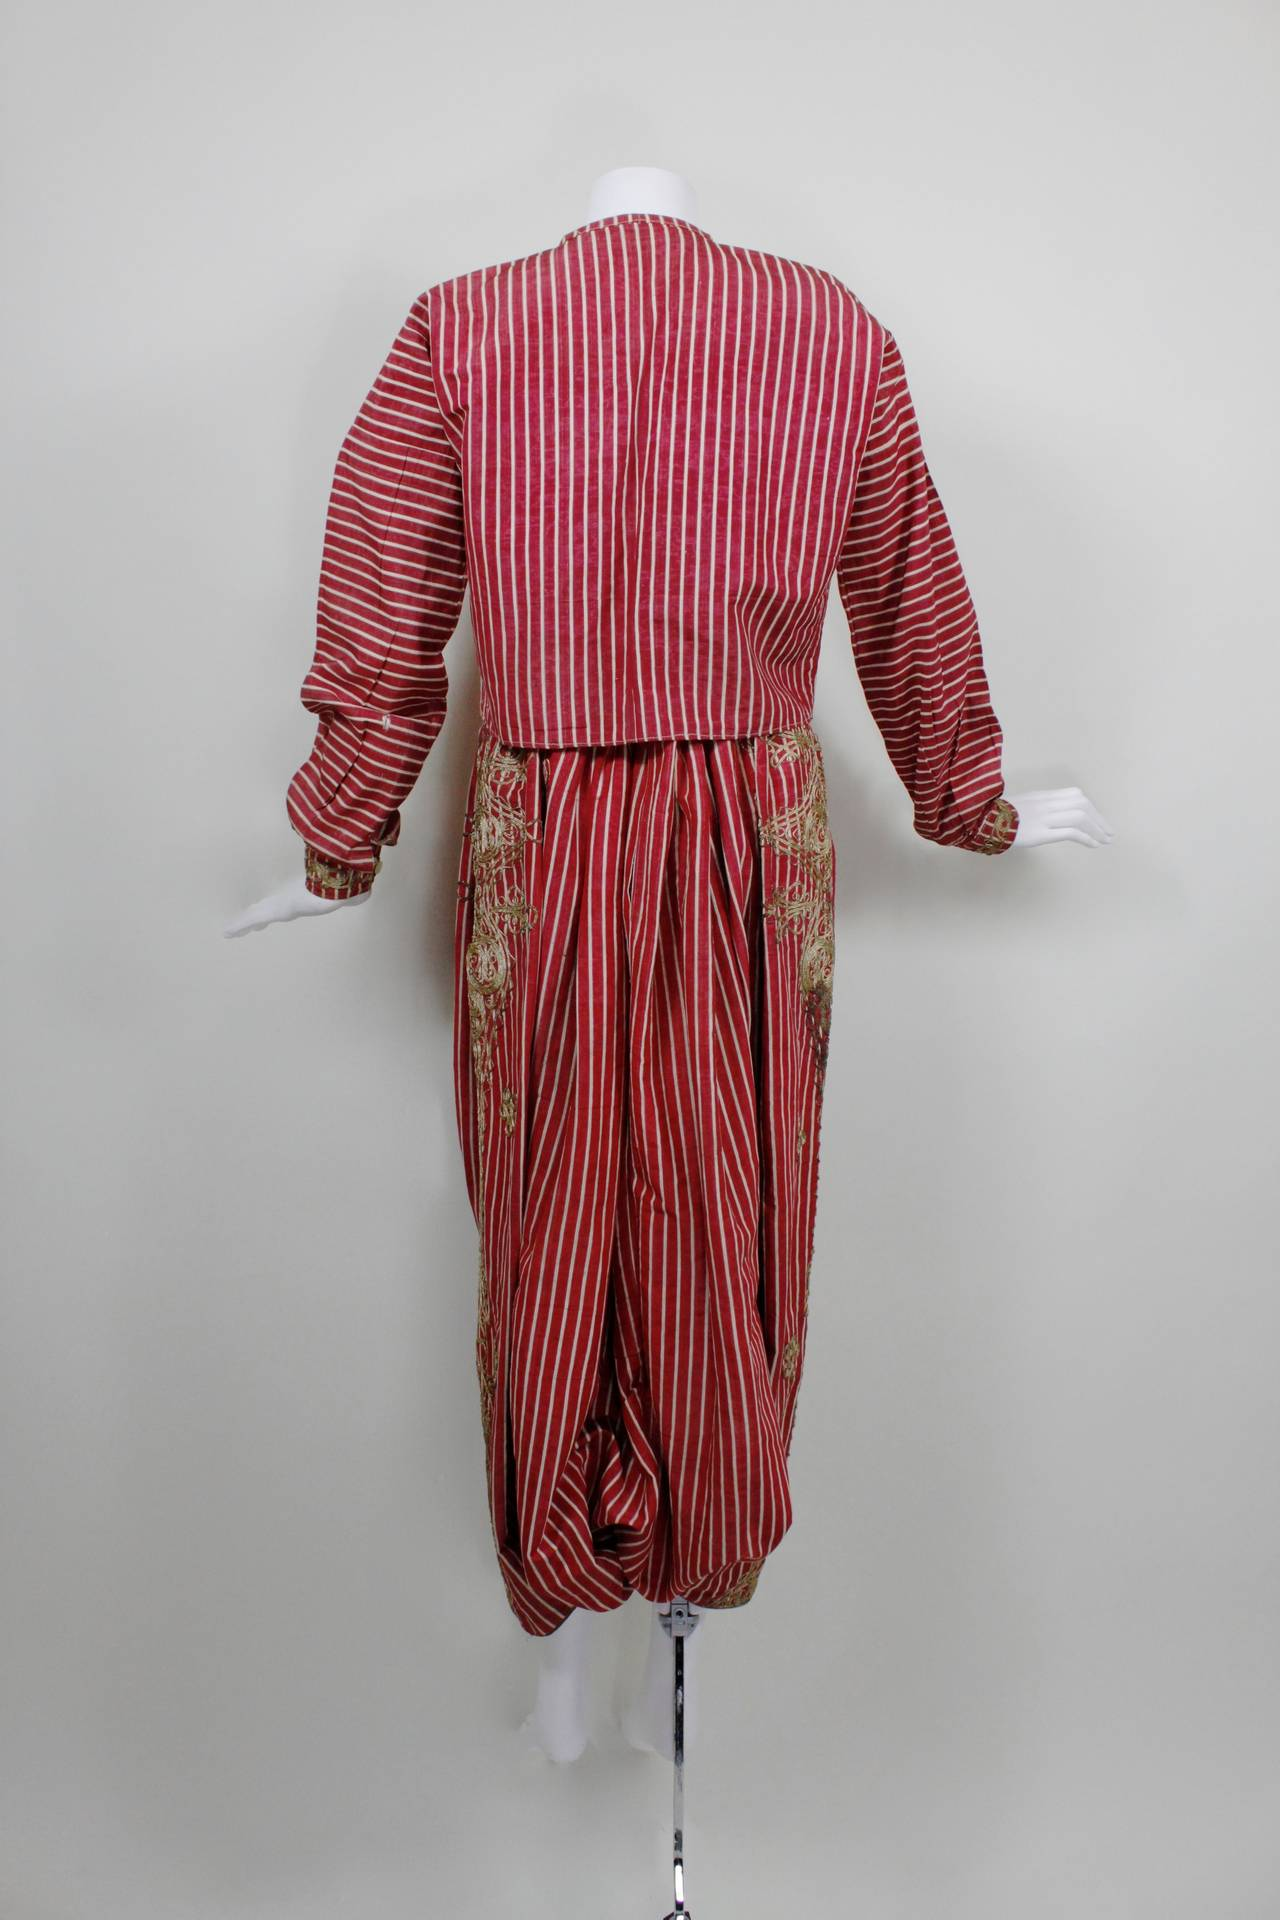 Turkish Silk Moire Striped Harem Pant Ensemble with Bullion Embroidery 5